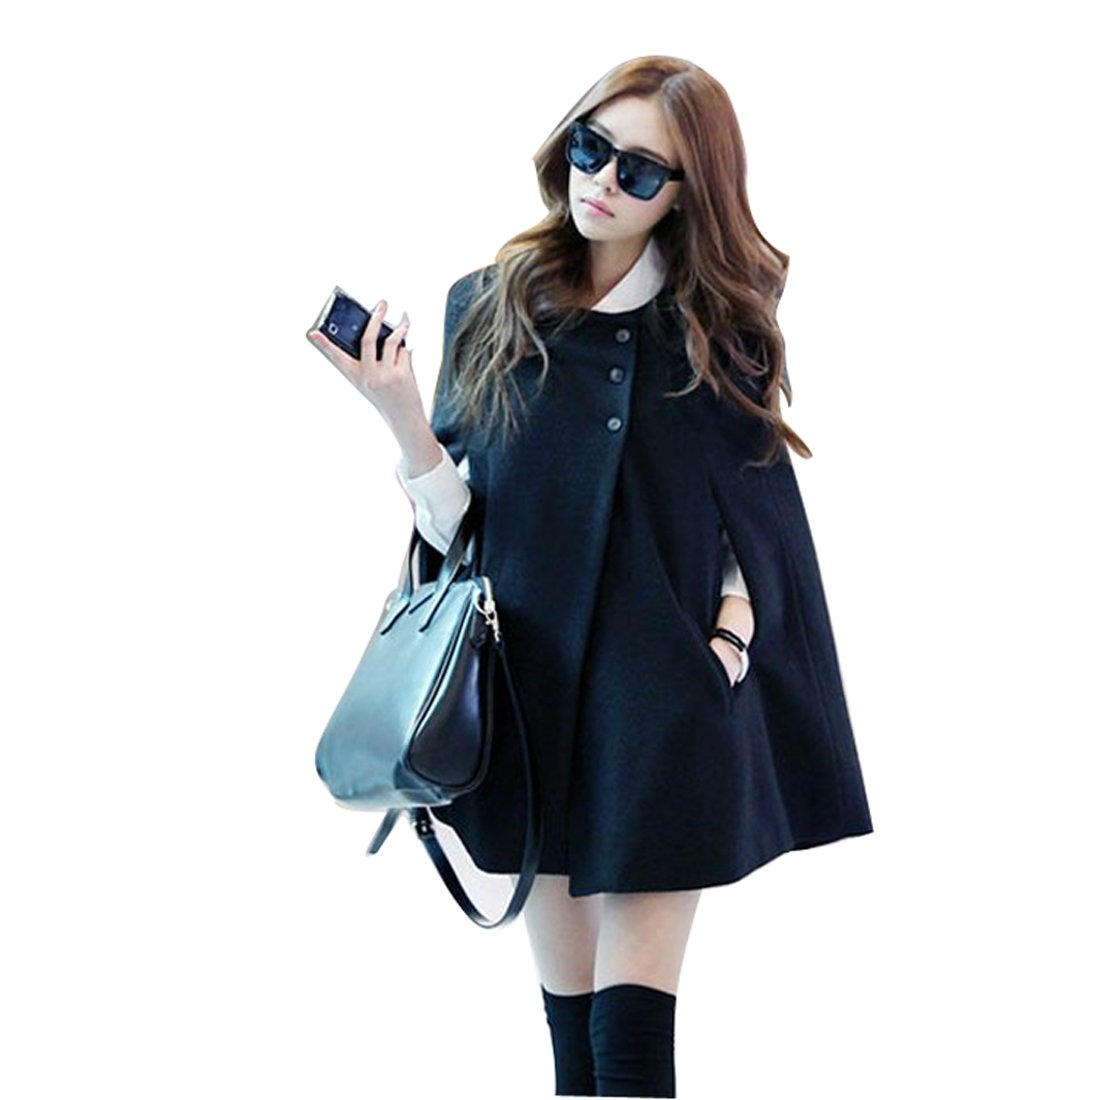 Gaorui Women Fashion Cape Bat wing Poncho Cloak Woolen Coat Top Black cappa Jacket